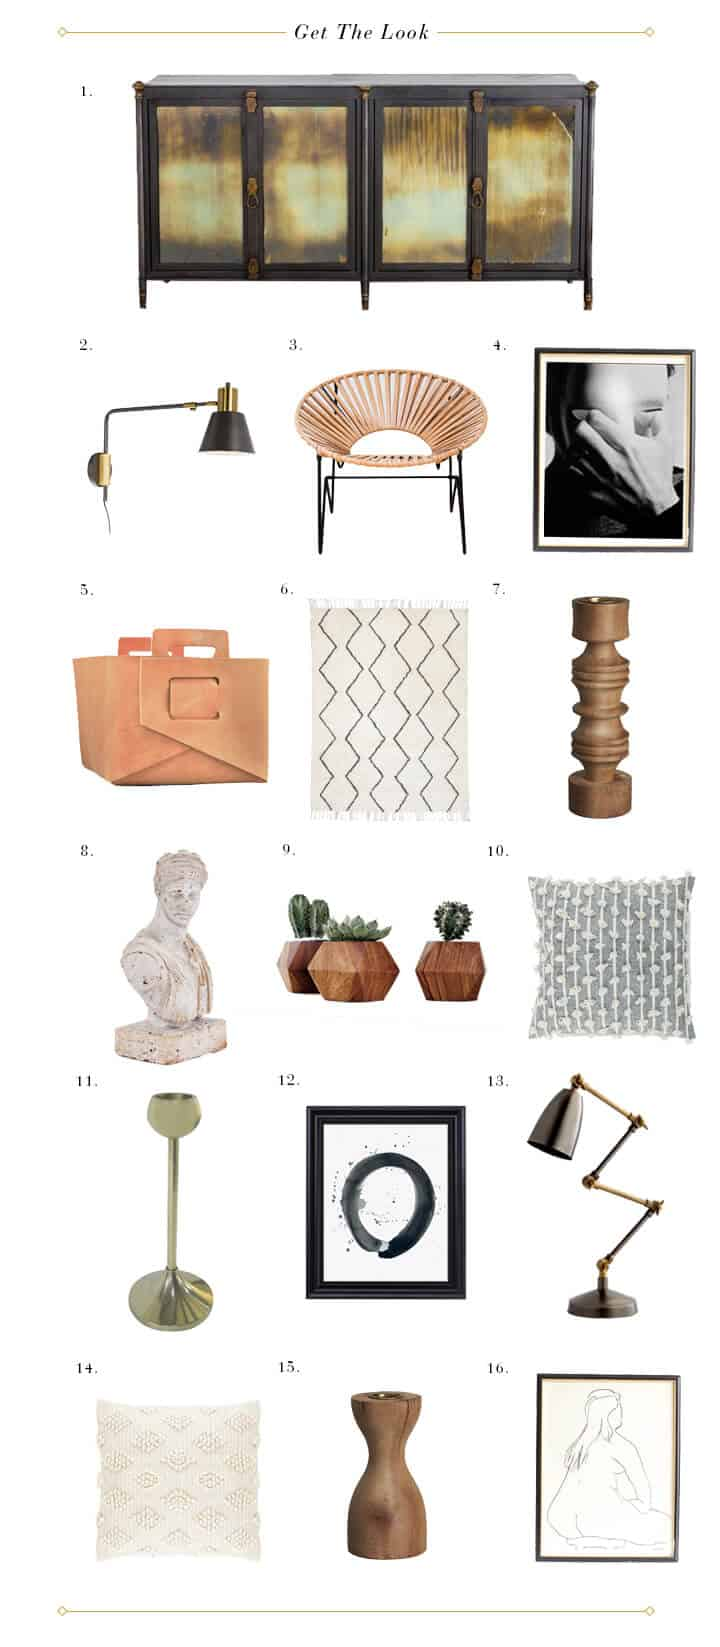 Brady Picks A Credenza_Living Room_Broc Console_Modern Art_Moody_Masculine_Gray_Wood_Eucalyptus_Woven Leather_Get The Look 1